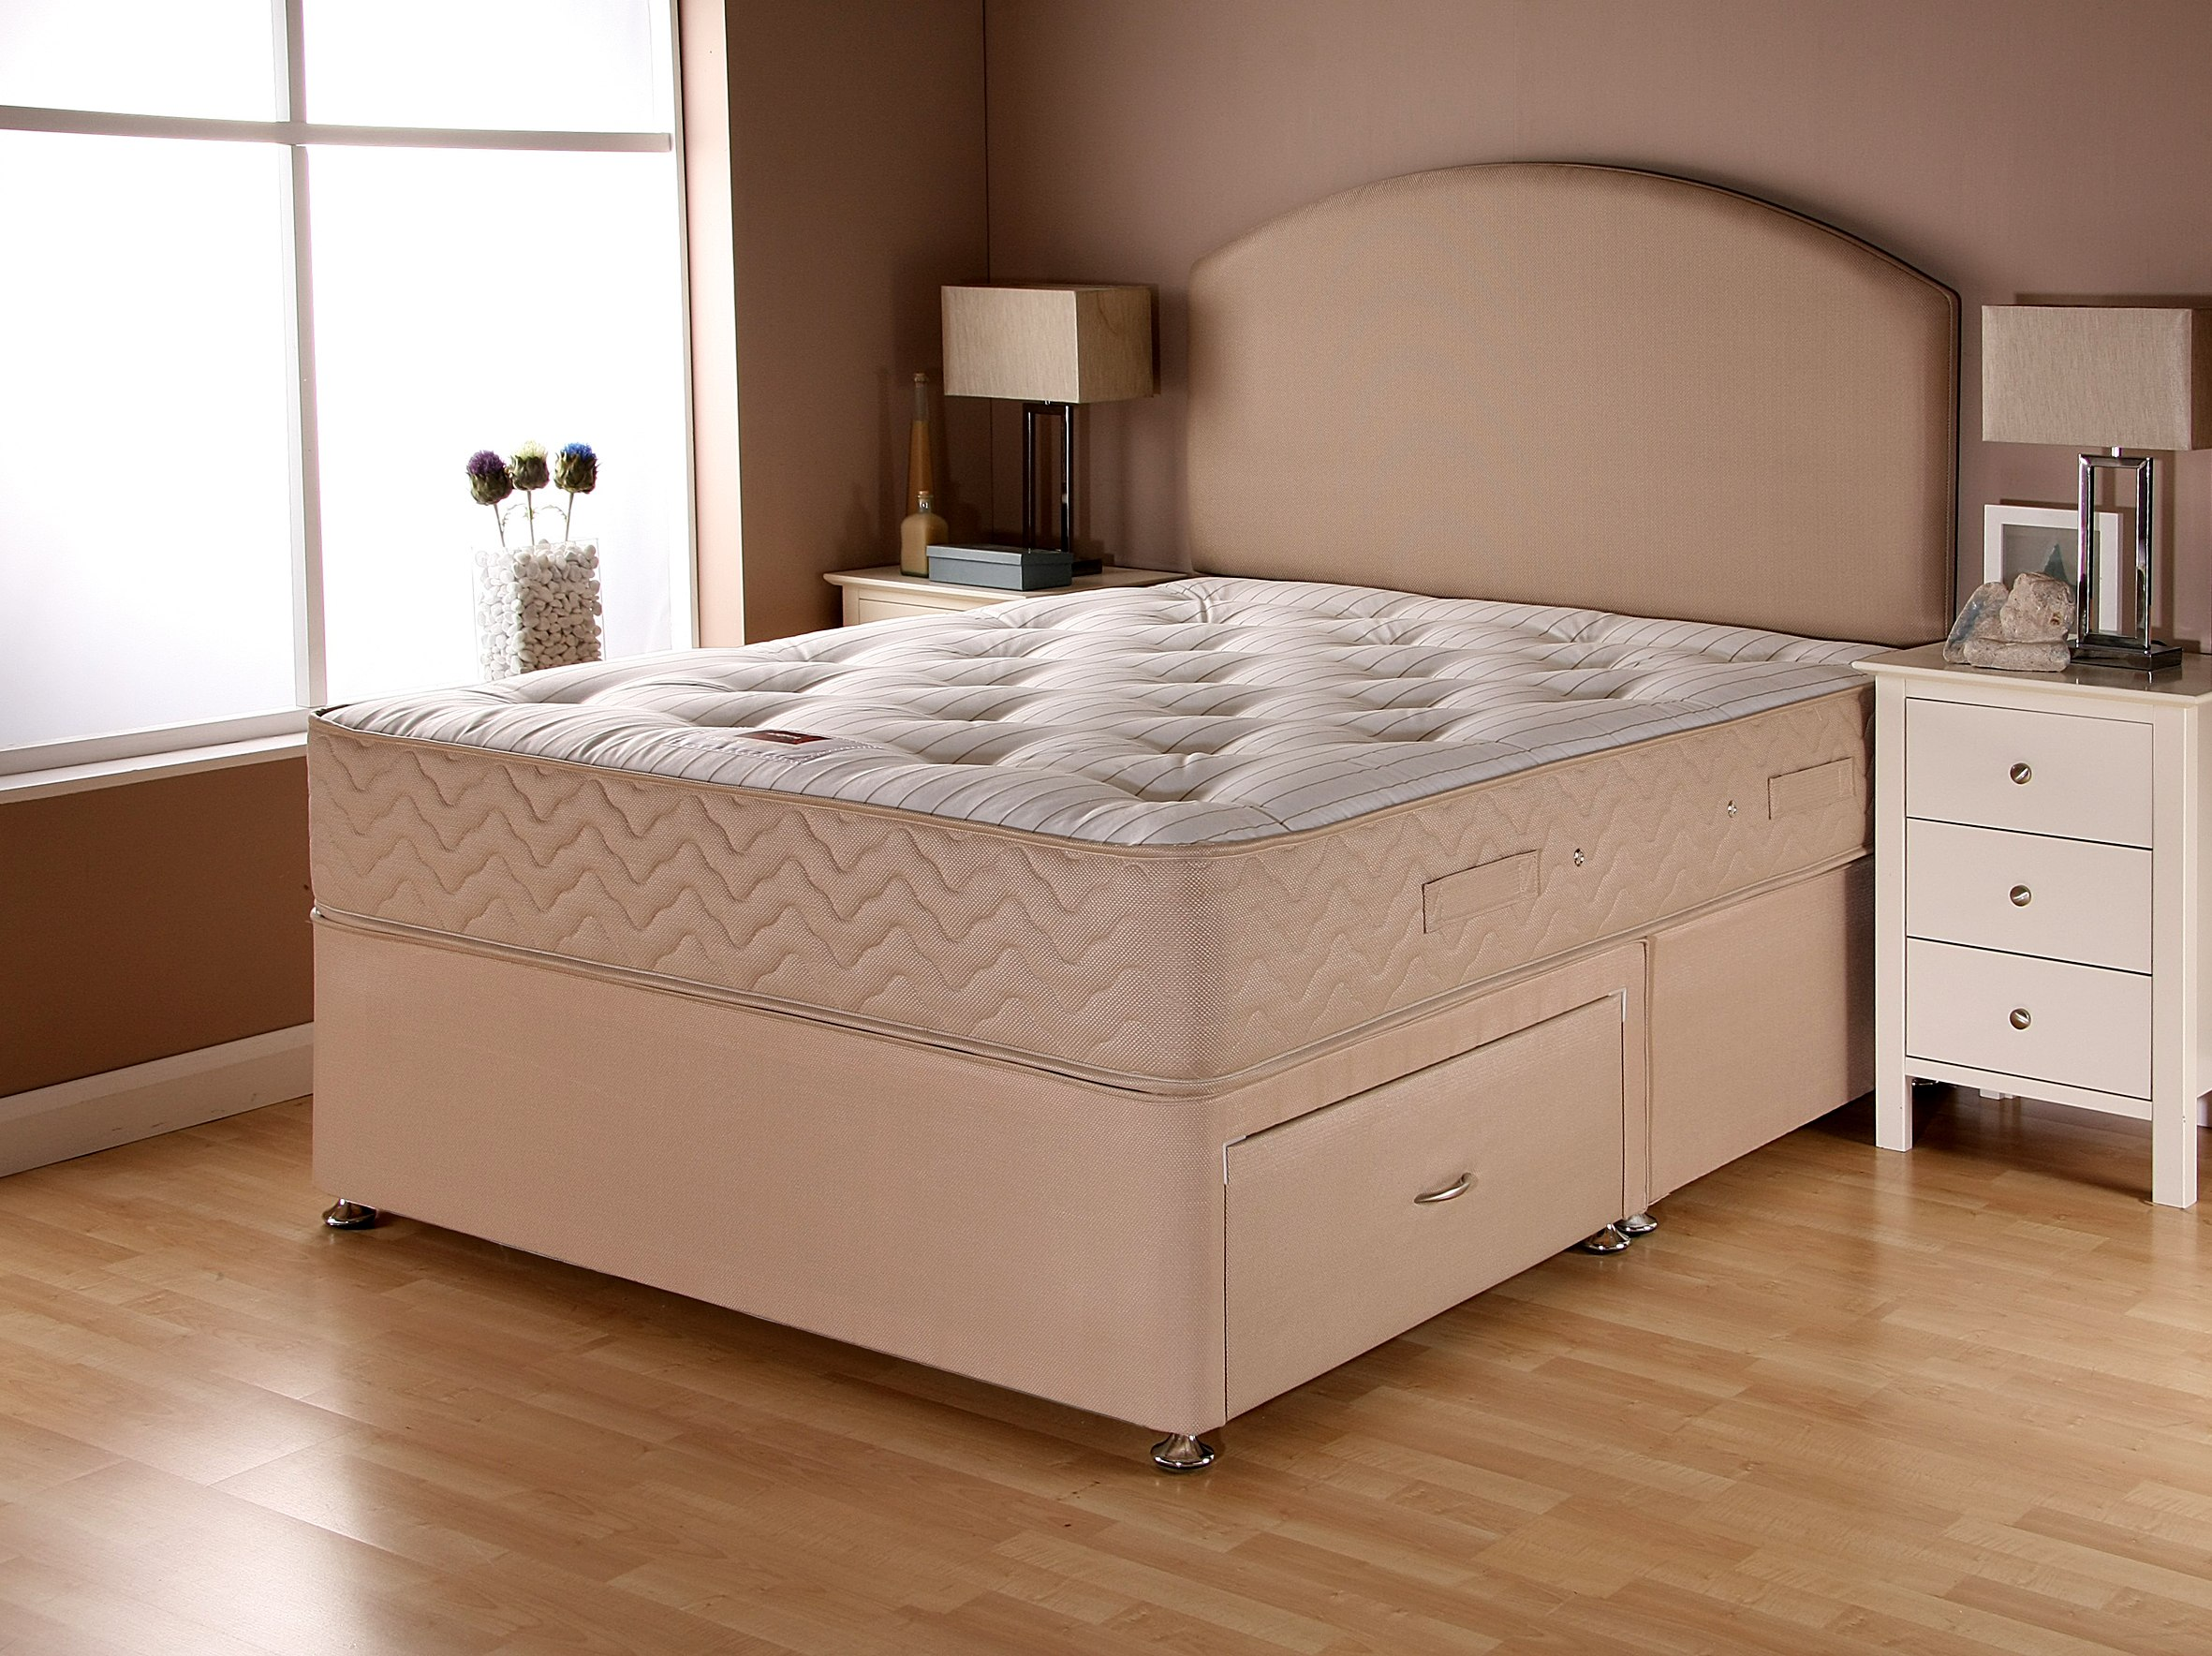 Catalina Pocket 1000 Divan Bed The World Of Beds